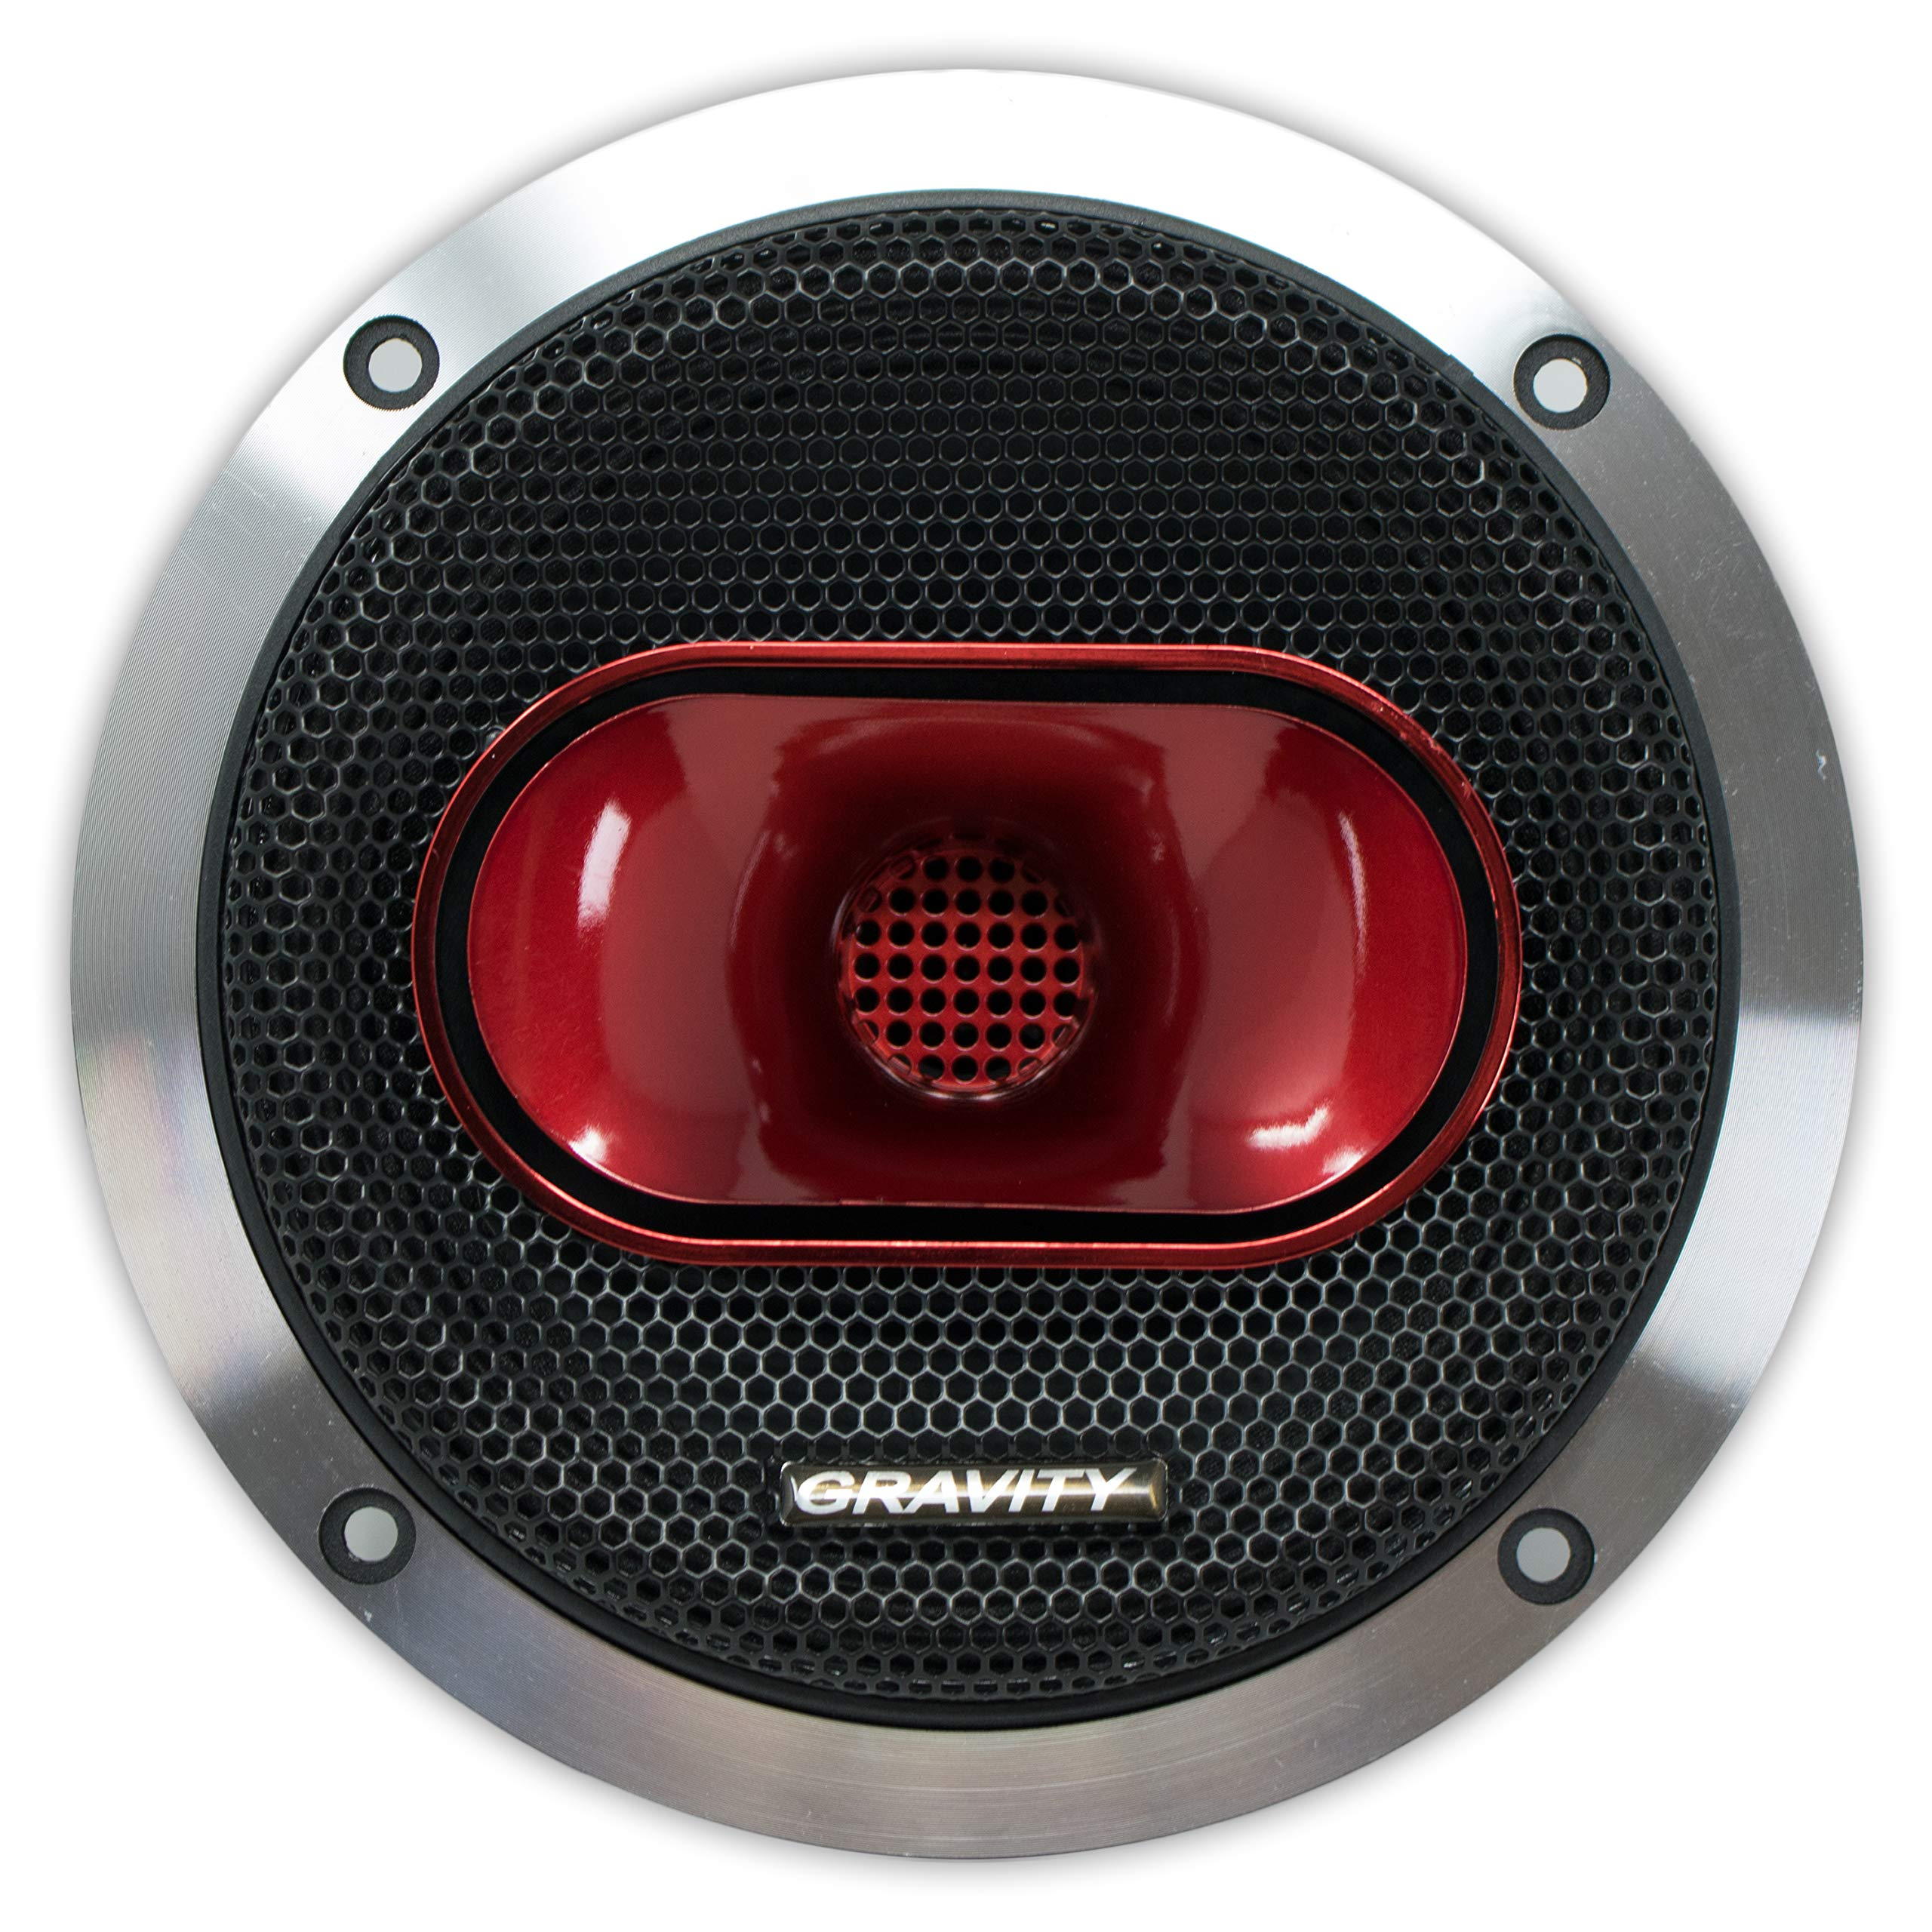 Gravity Warzone Series 6.5'' inch Pro Midrange Coaxial Loud Speaker 4-Ohms with 600W Max, 1 Speaker WZP65 by Gravity Professional (Image #2)